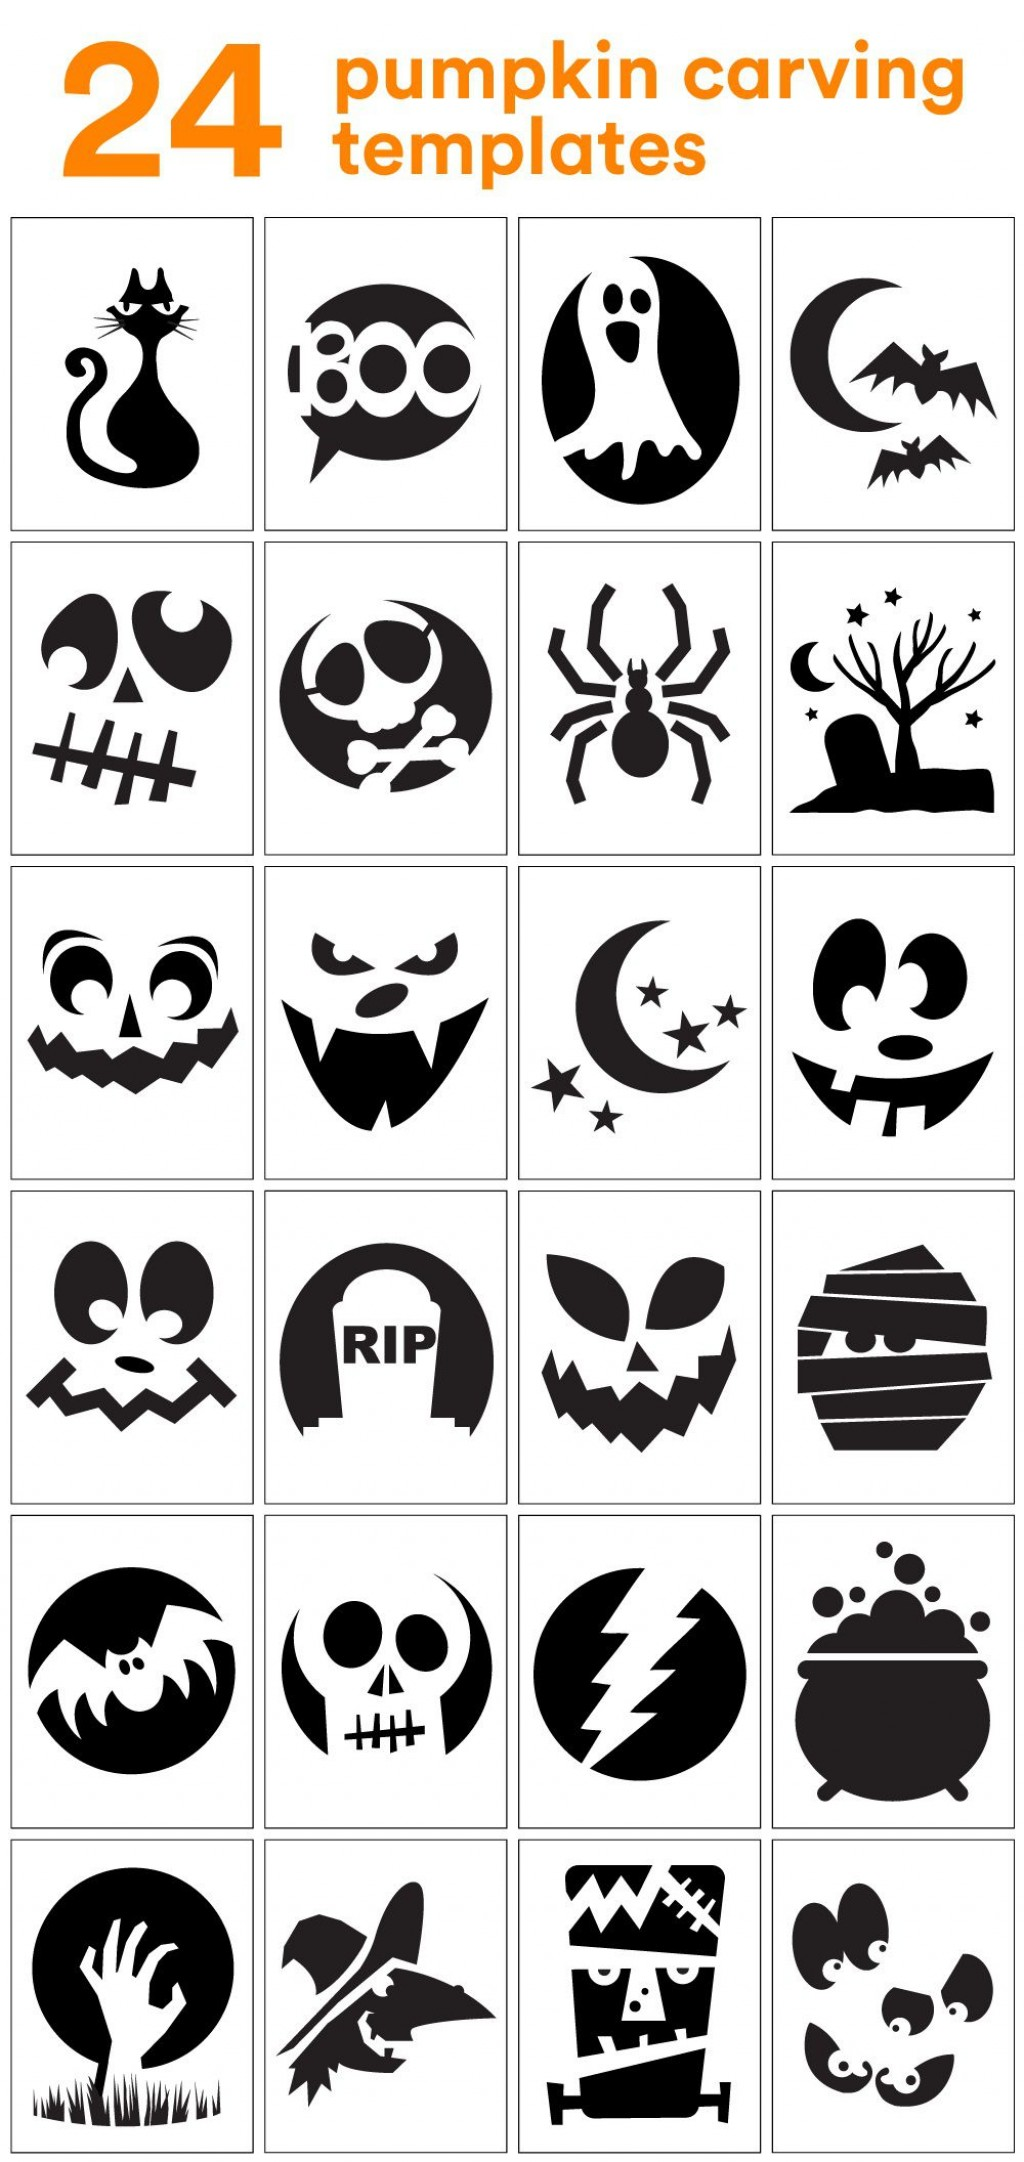 006 Top Free Pumpkin Template Printable High Resolution  Easy Carving Scary StencilLarge